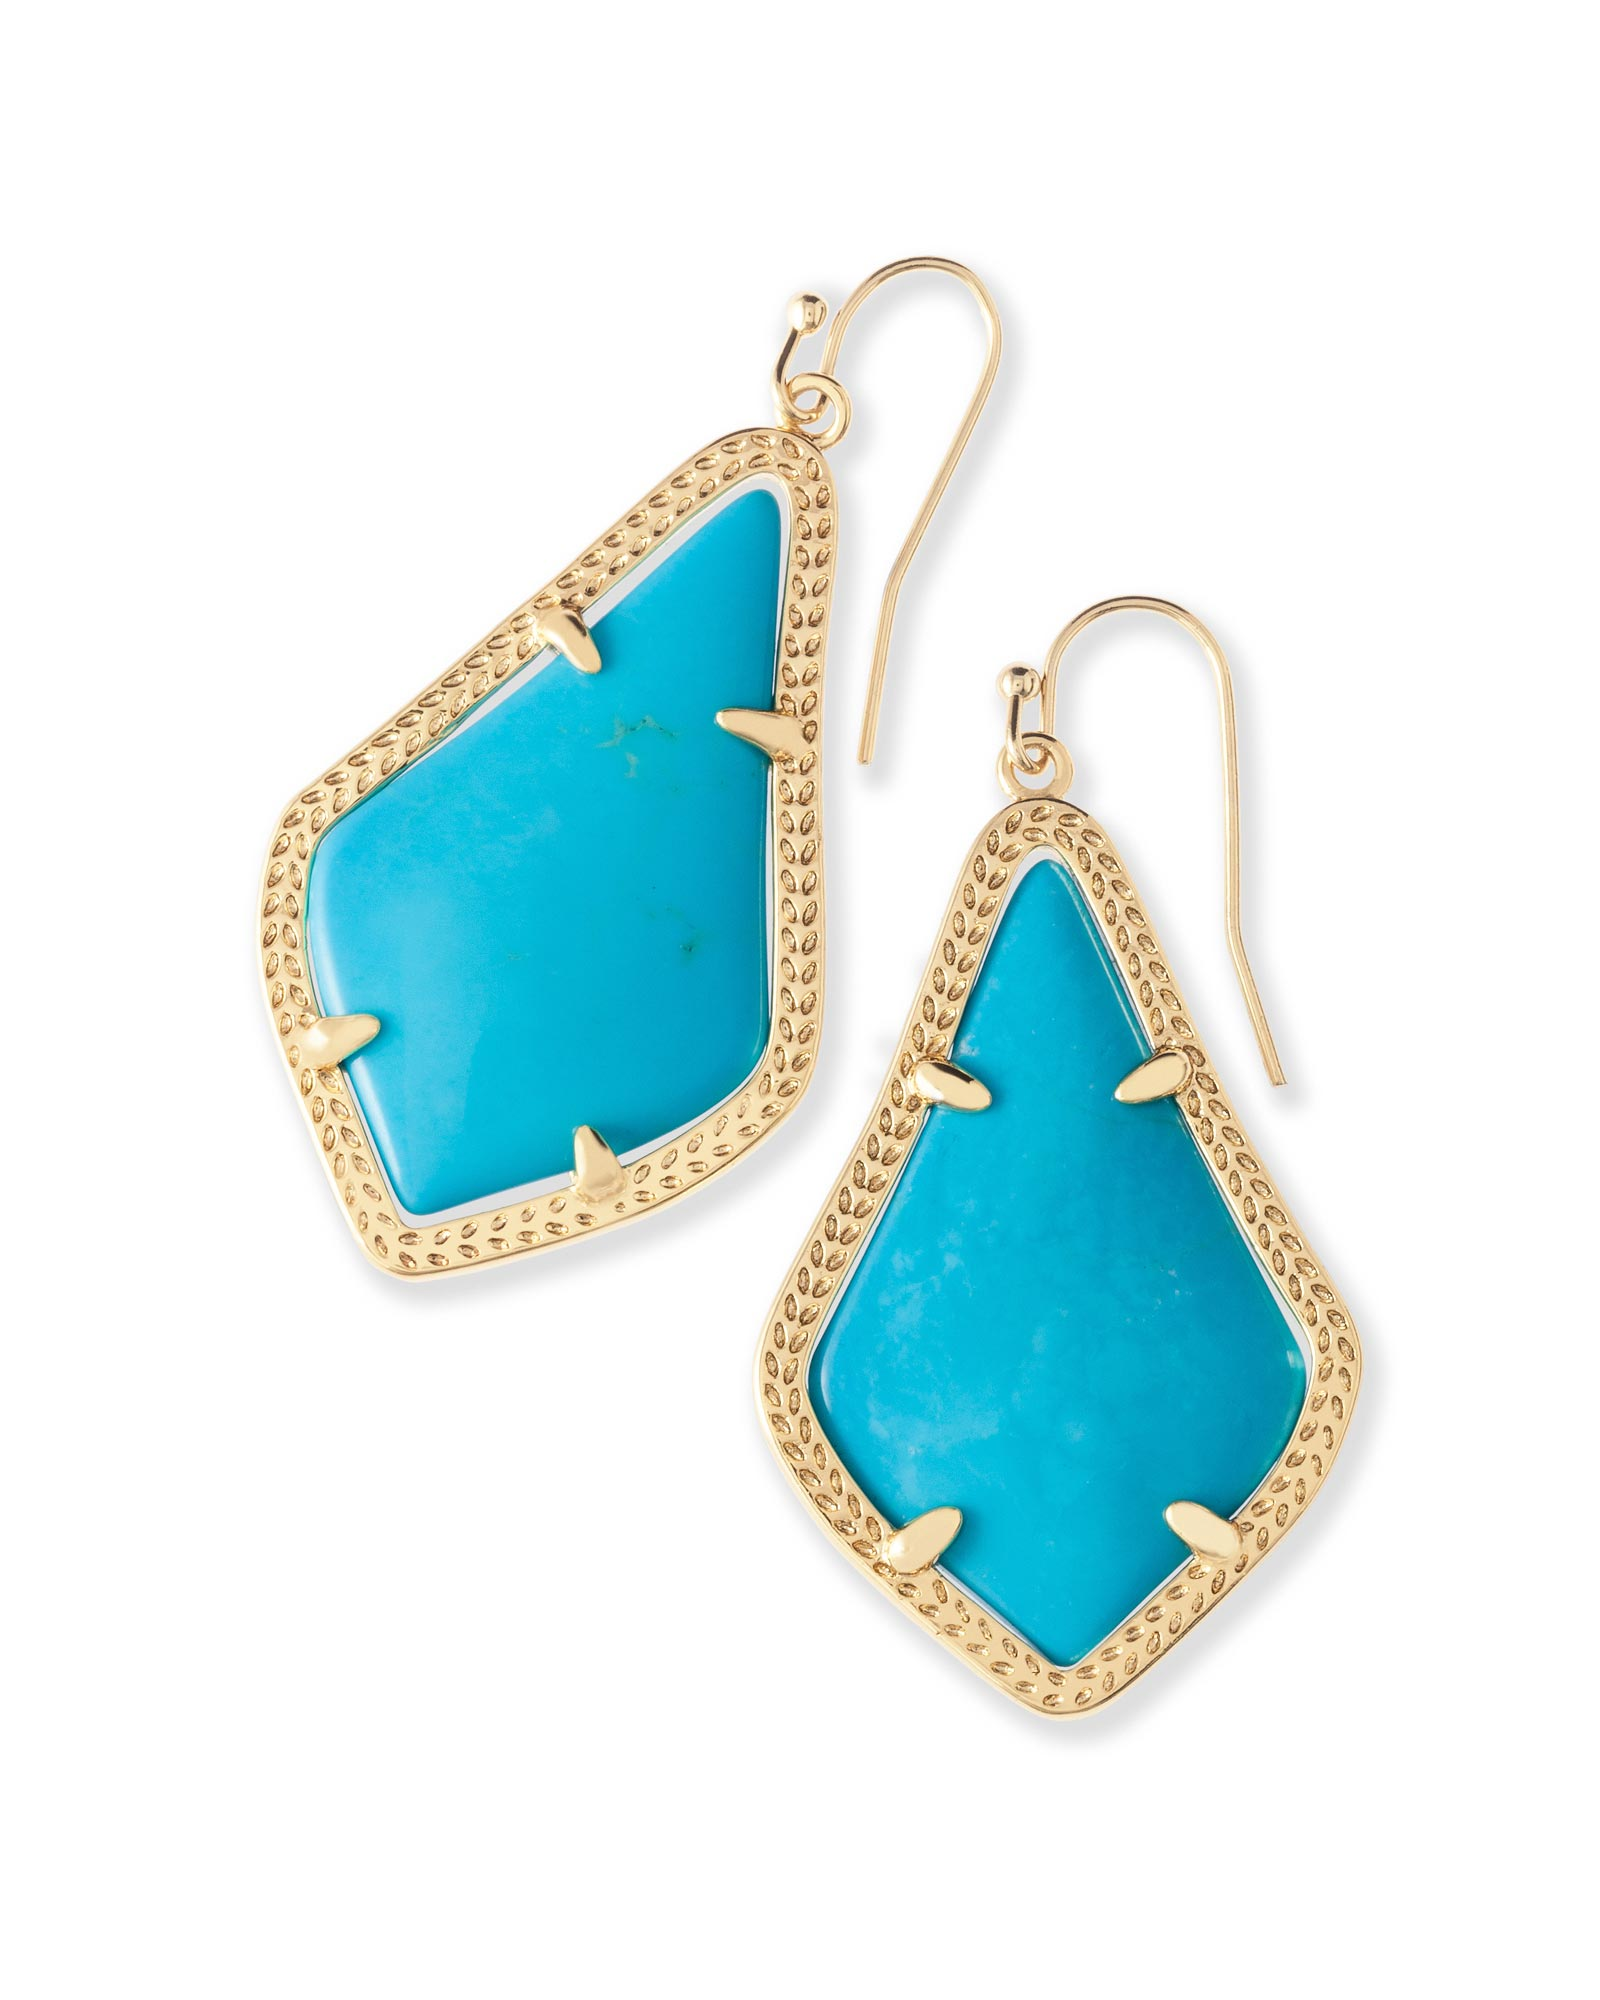 Alex Gold Drop Earrings in Blue Turquoise